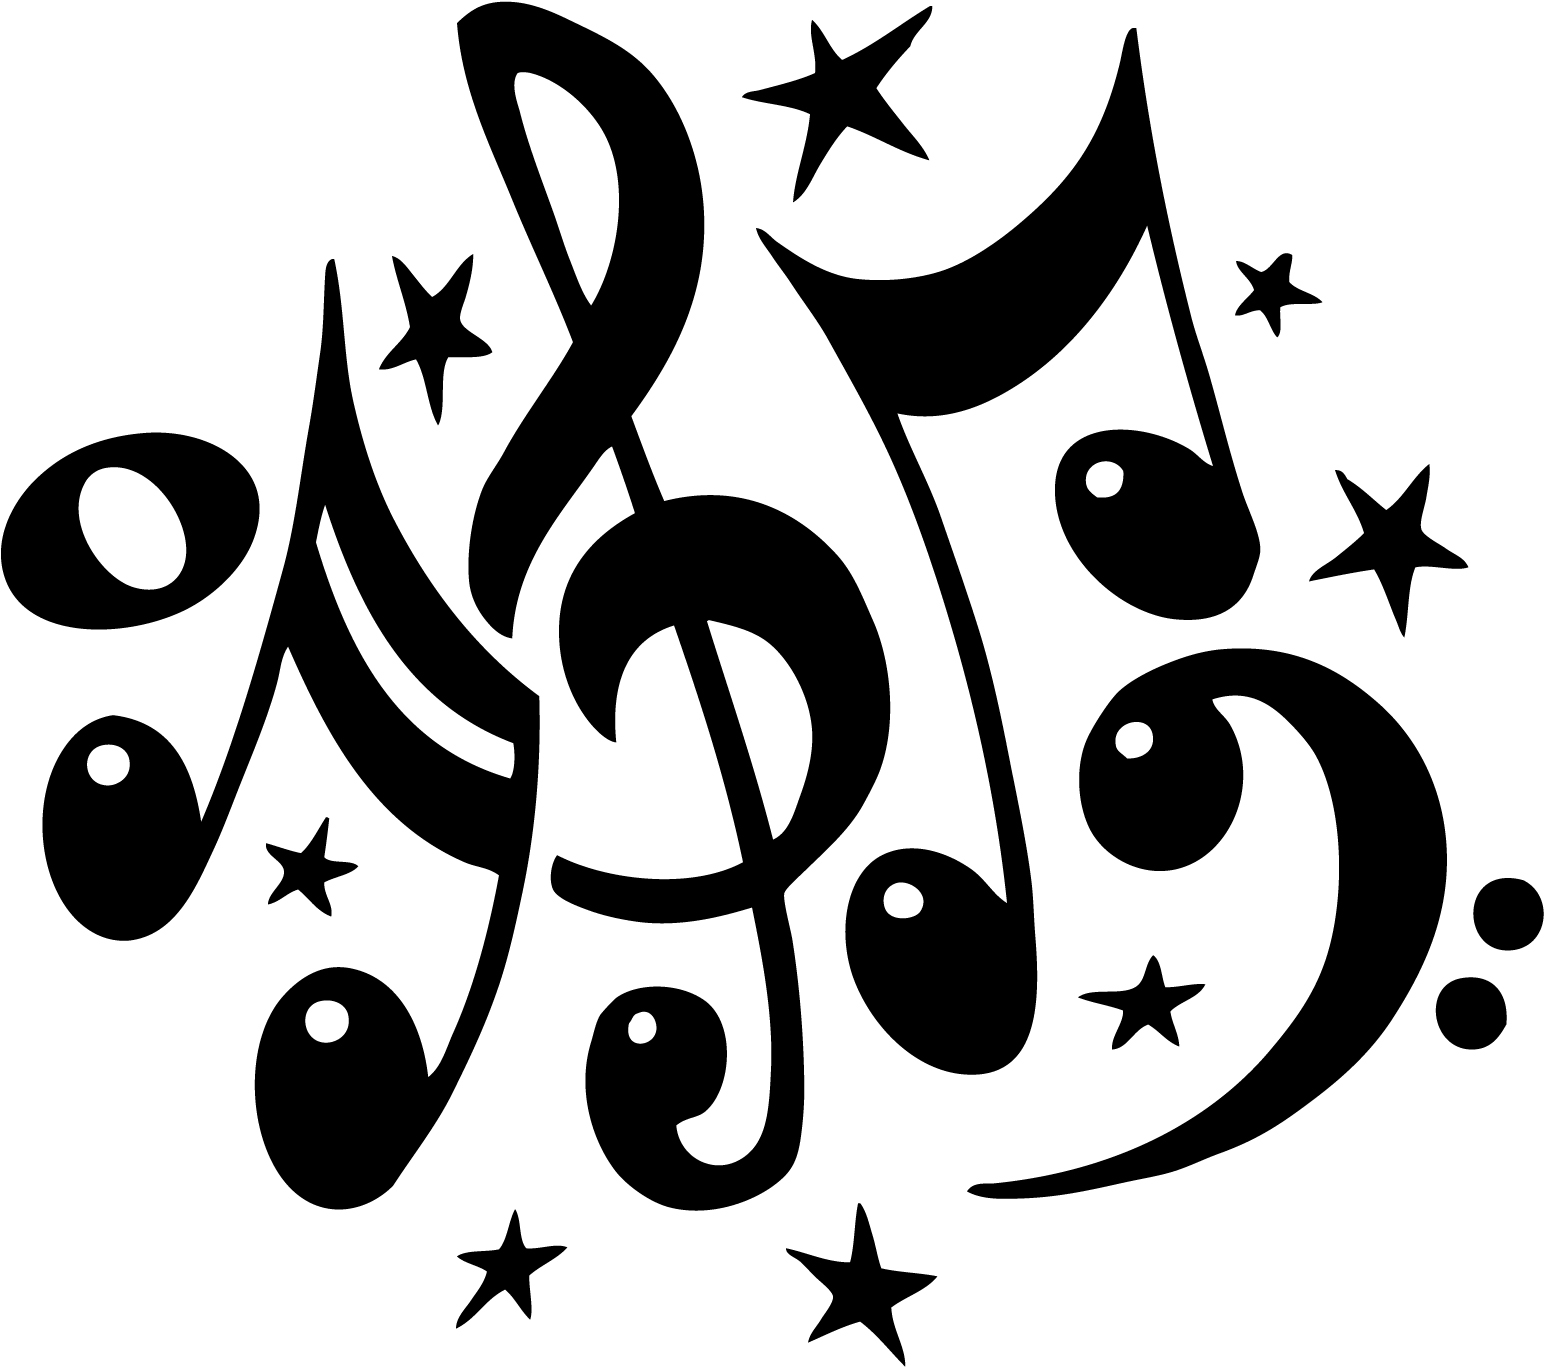 Musical Notes Free Clip Art Music Notes -Musical notes free clip art music notes clipartwiz-17